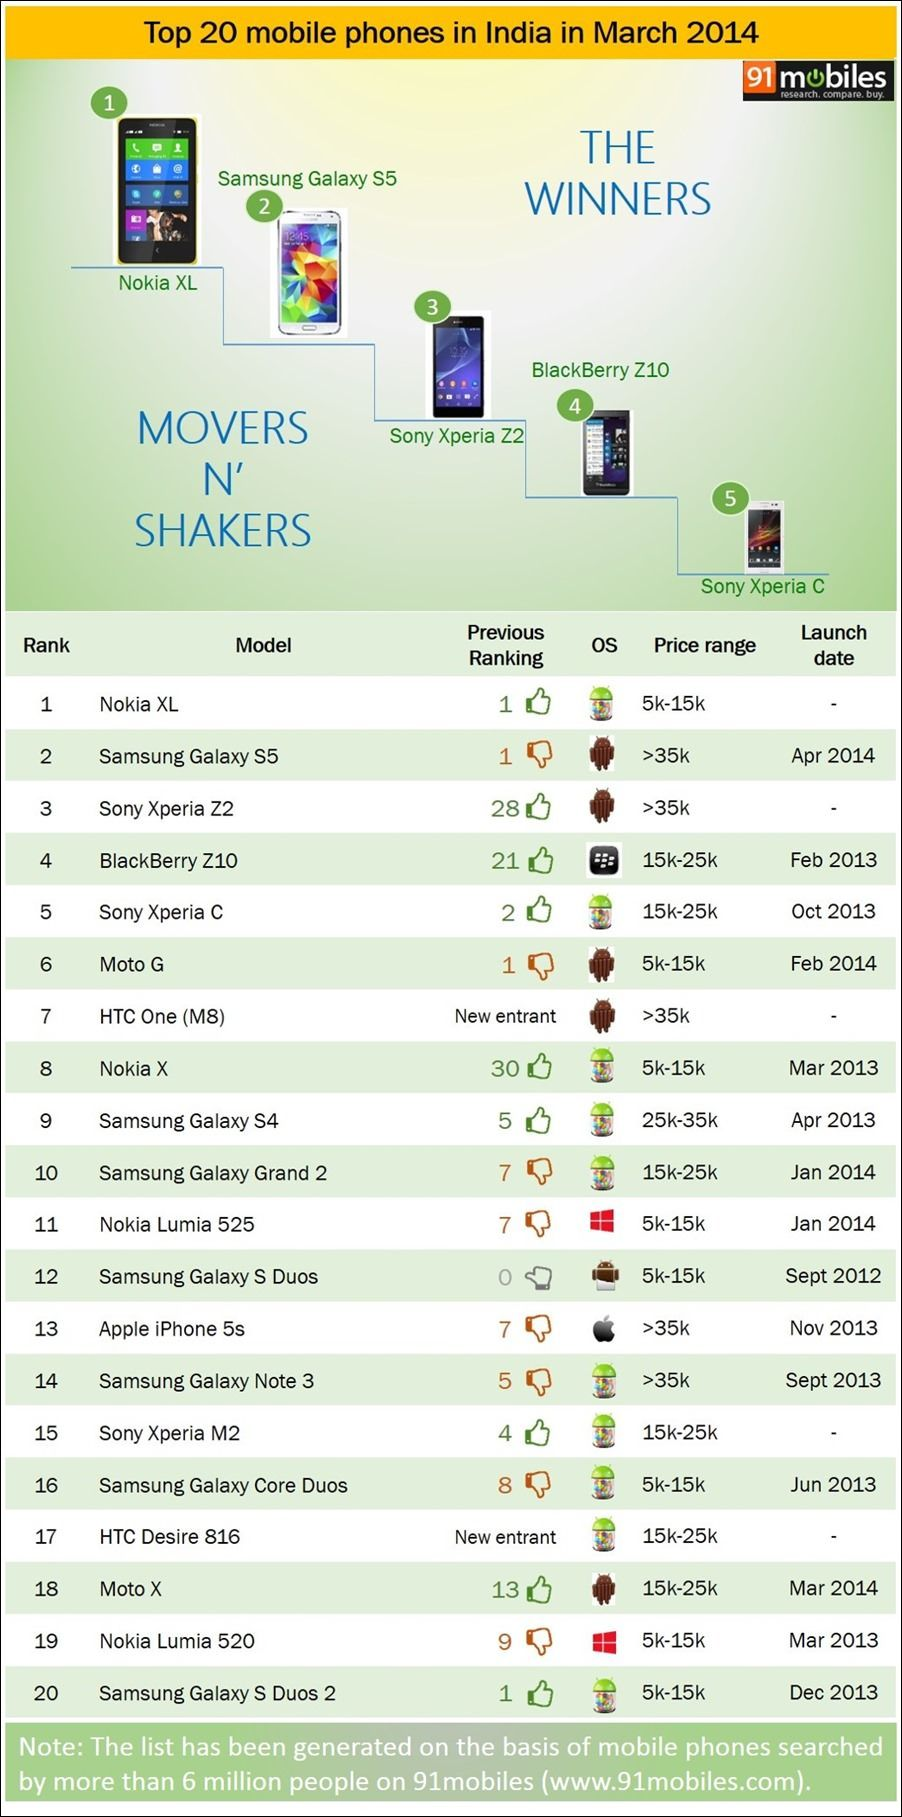 Top 20 mobile phones in India in March 2014